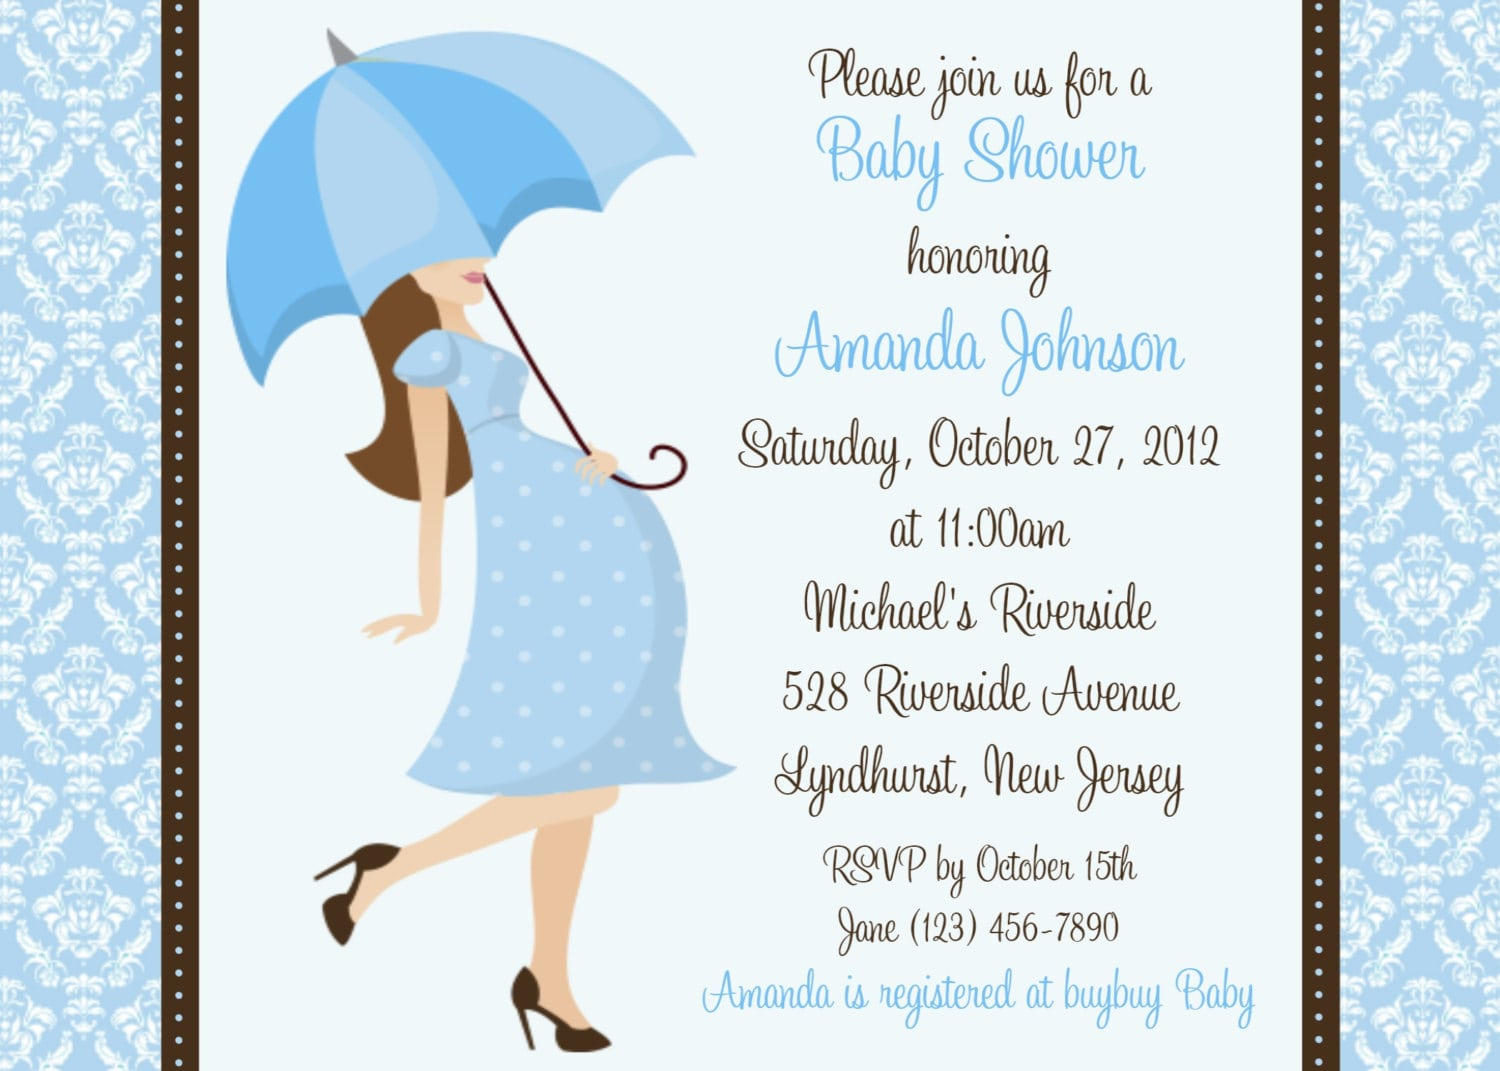 Baby Shower Invitation Samples For A Baby Boy